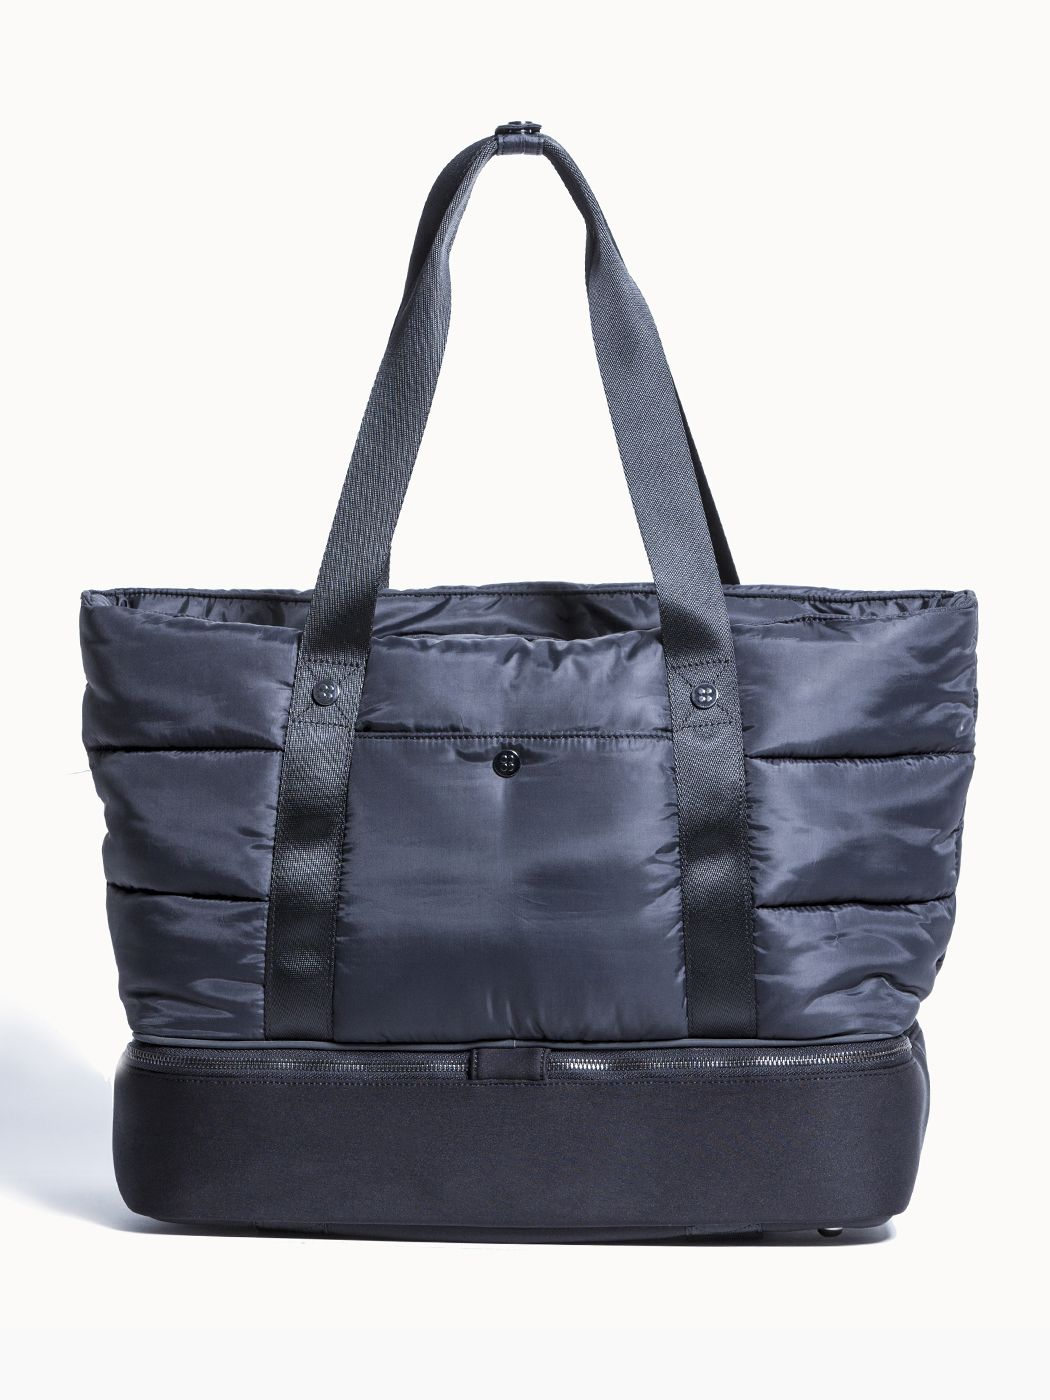 a5a32b4211c3 Luxe Gym Bag by SWEATY BETTY